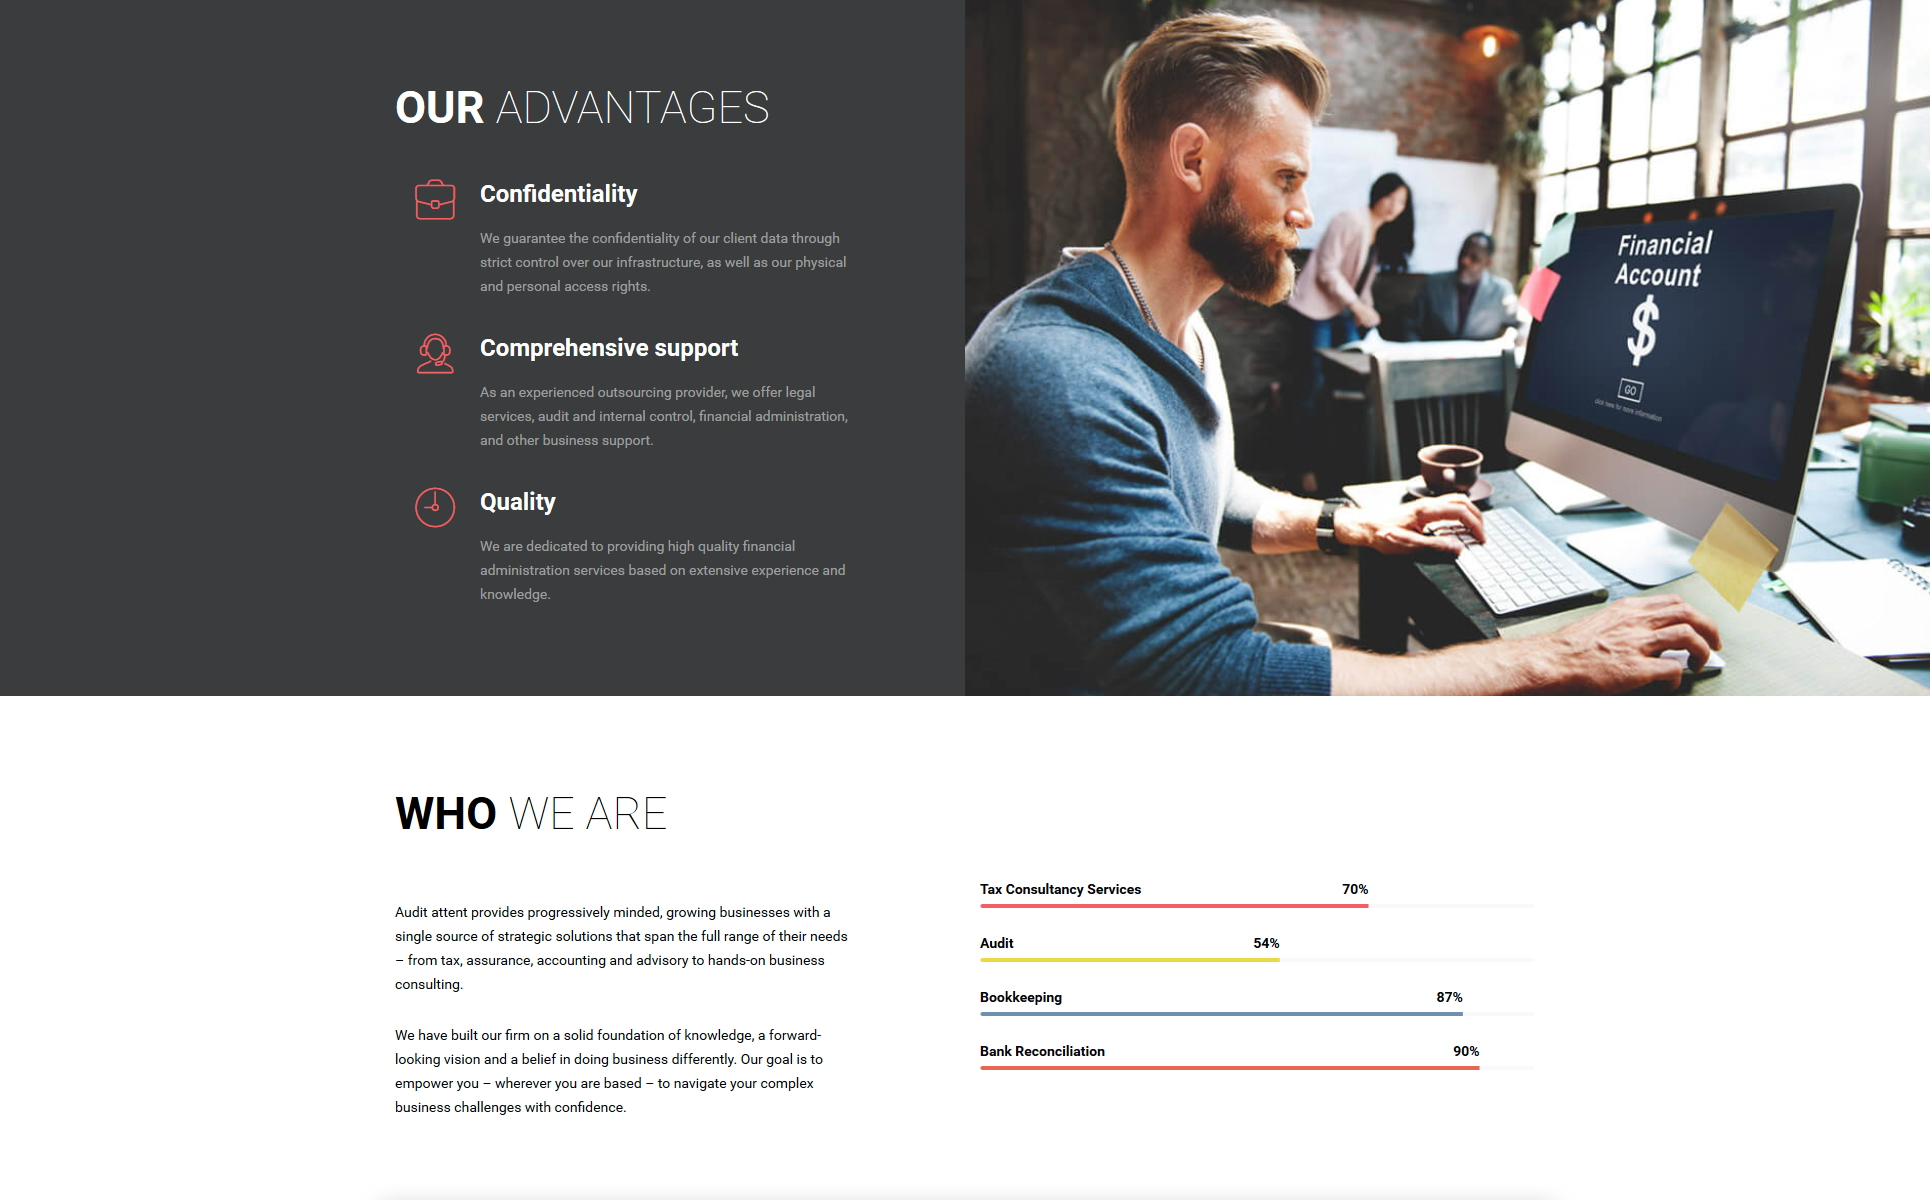 1519369-1531750292768_02 Job Booking Form Template on for vacation home rental, for actors, for weddings, free printable, cruise travel, free cruise, for speakers, editable event, free photography, music artist,